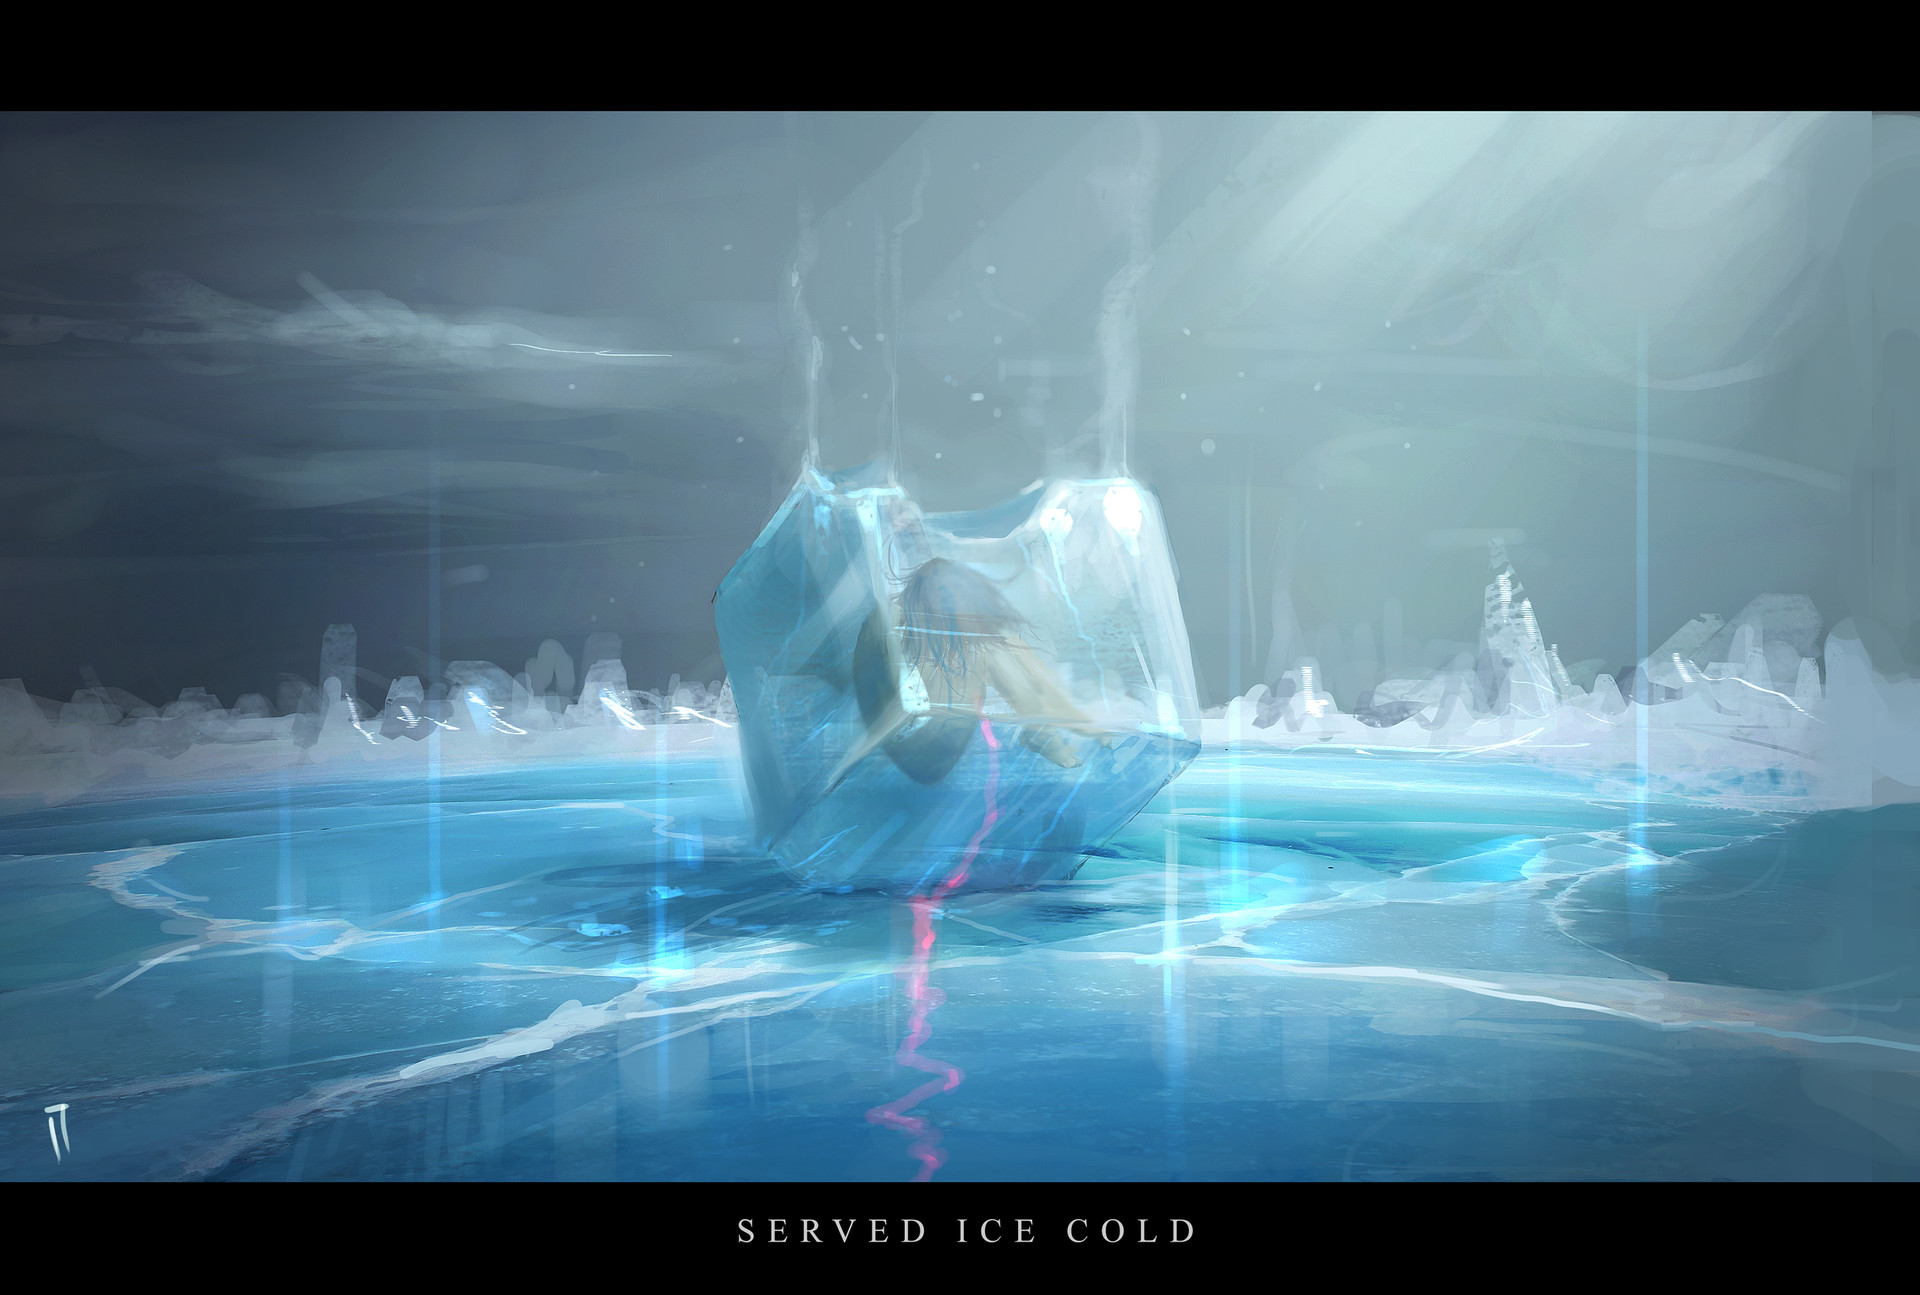 Ismail inceoglu served ice cold